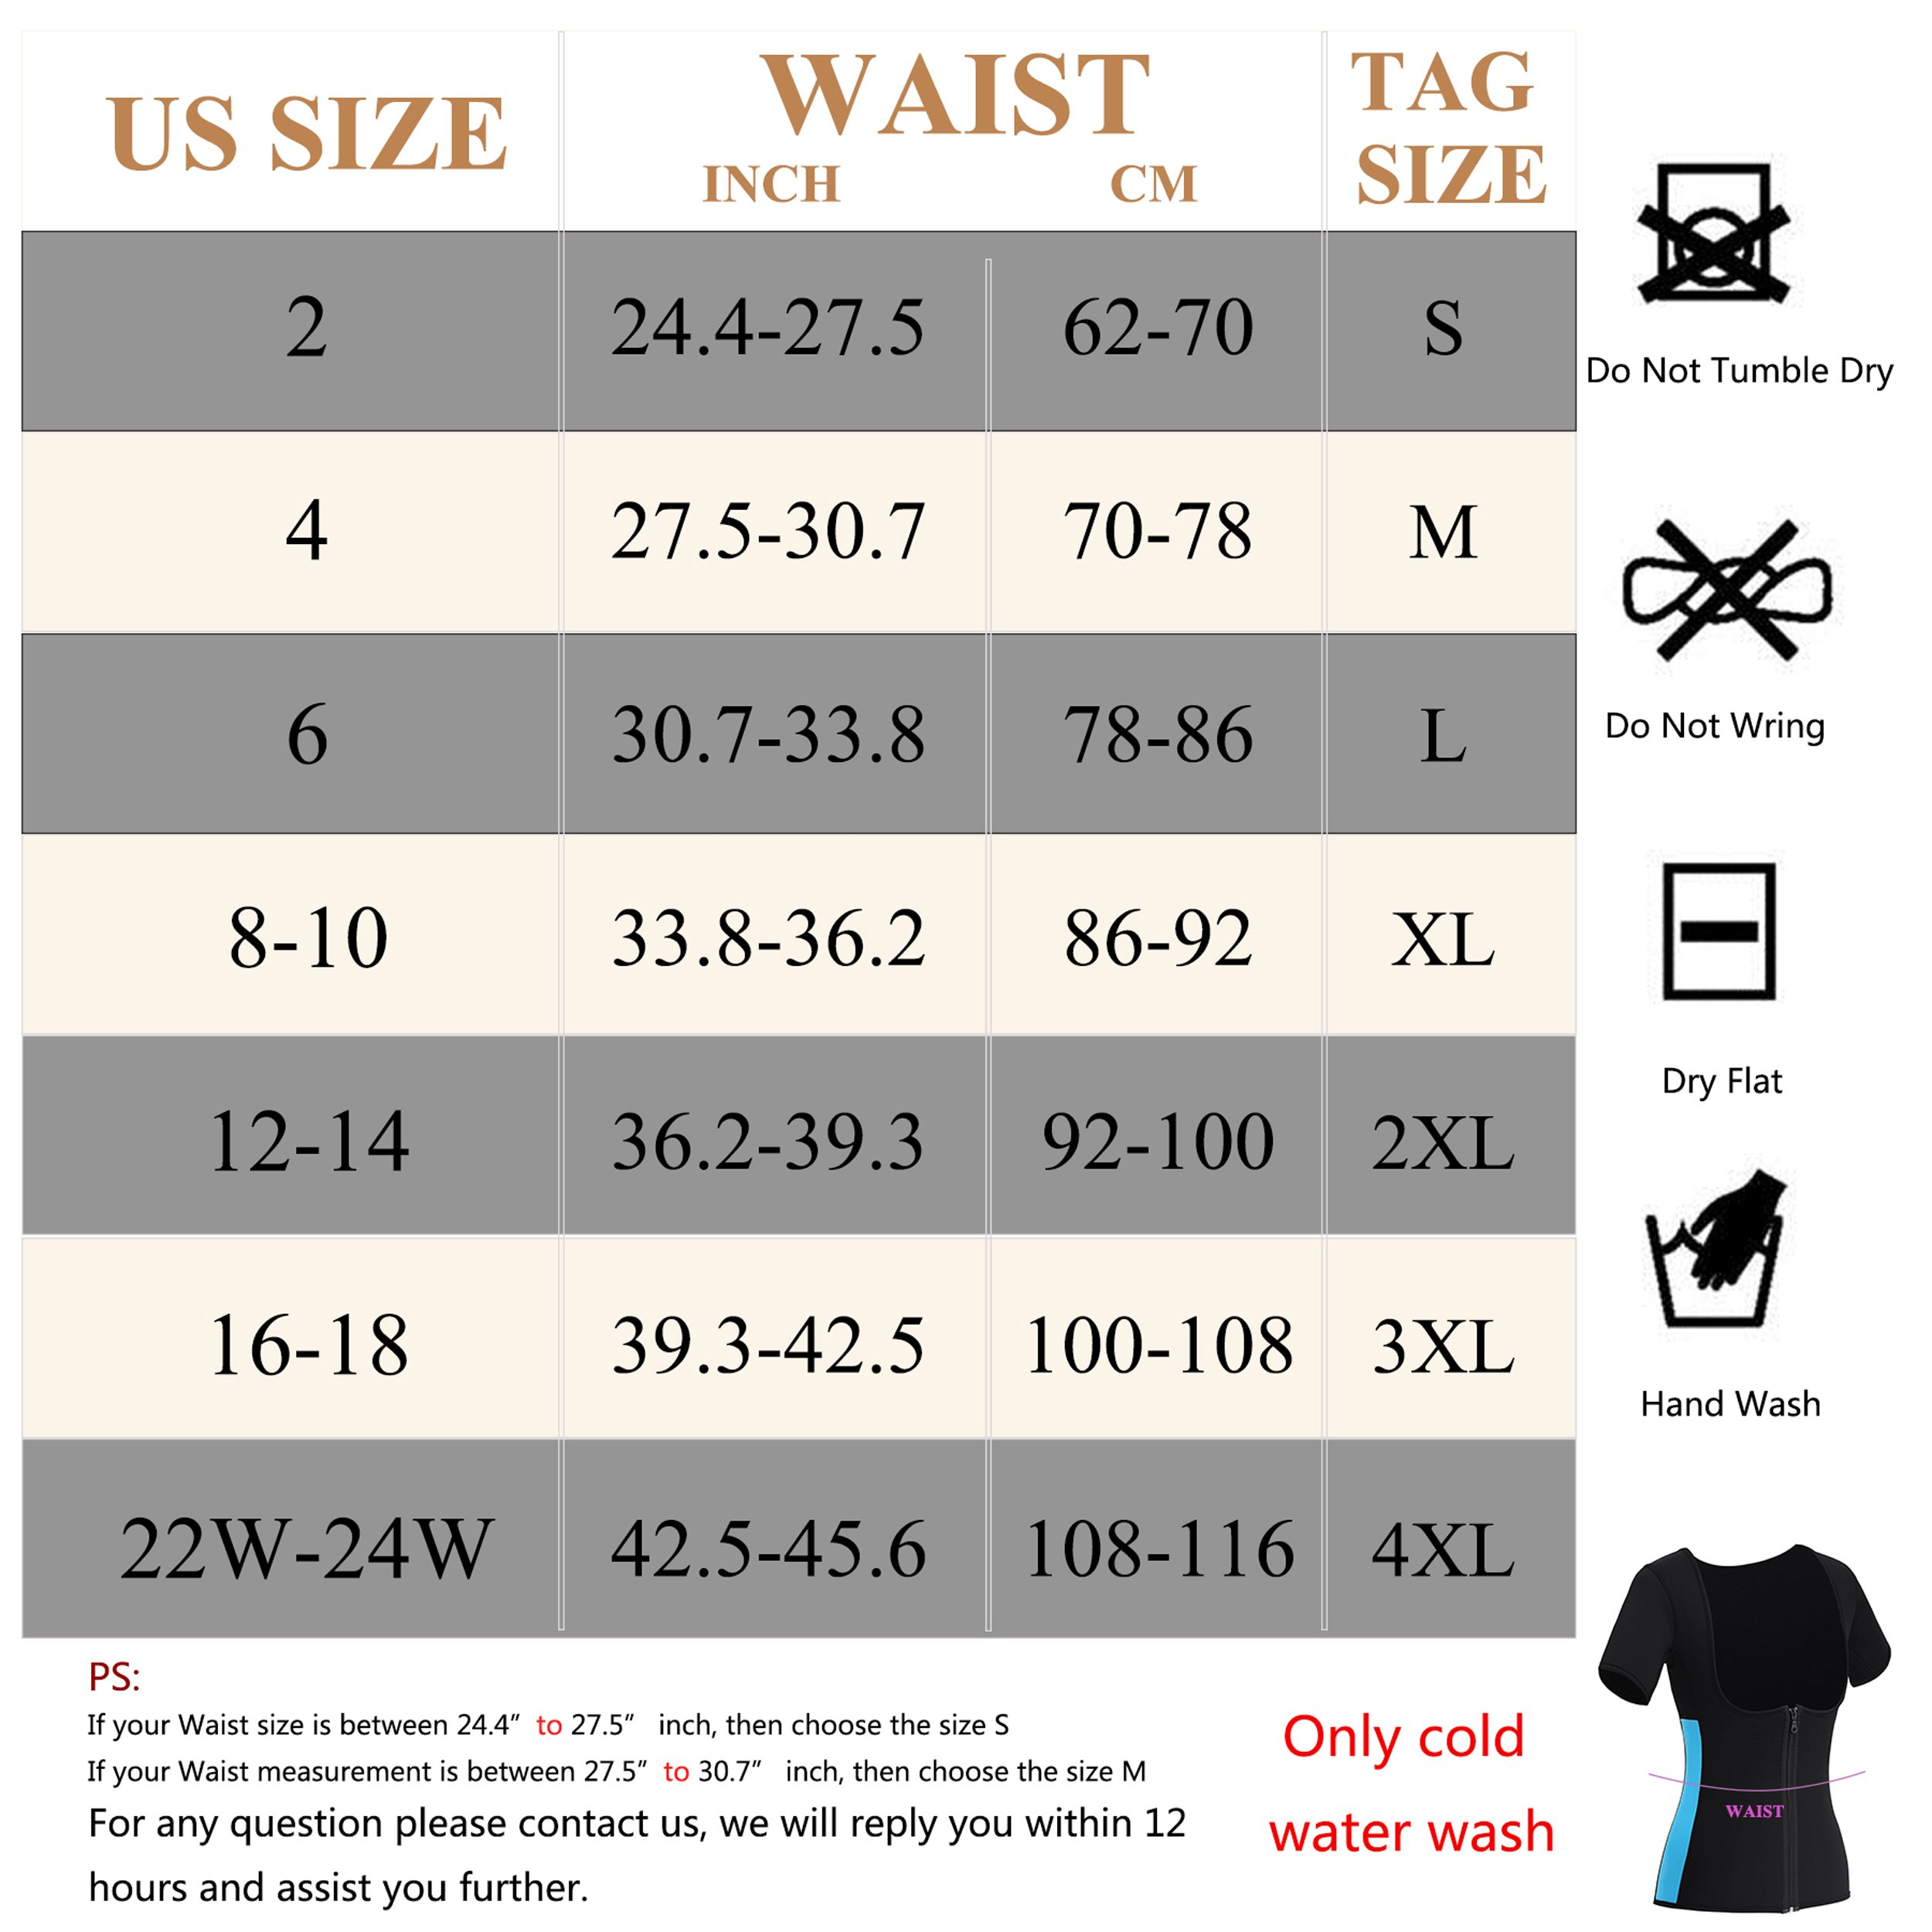 Gotoly Women Neoprene Zipper Front Hot Sweat Slimming Shirt Vest Body Shapers(M Fit 27.5-30.7 inch Waistline, Black) by Gotoly (Image #7)